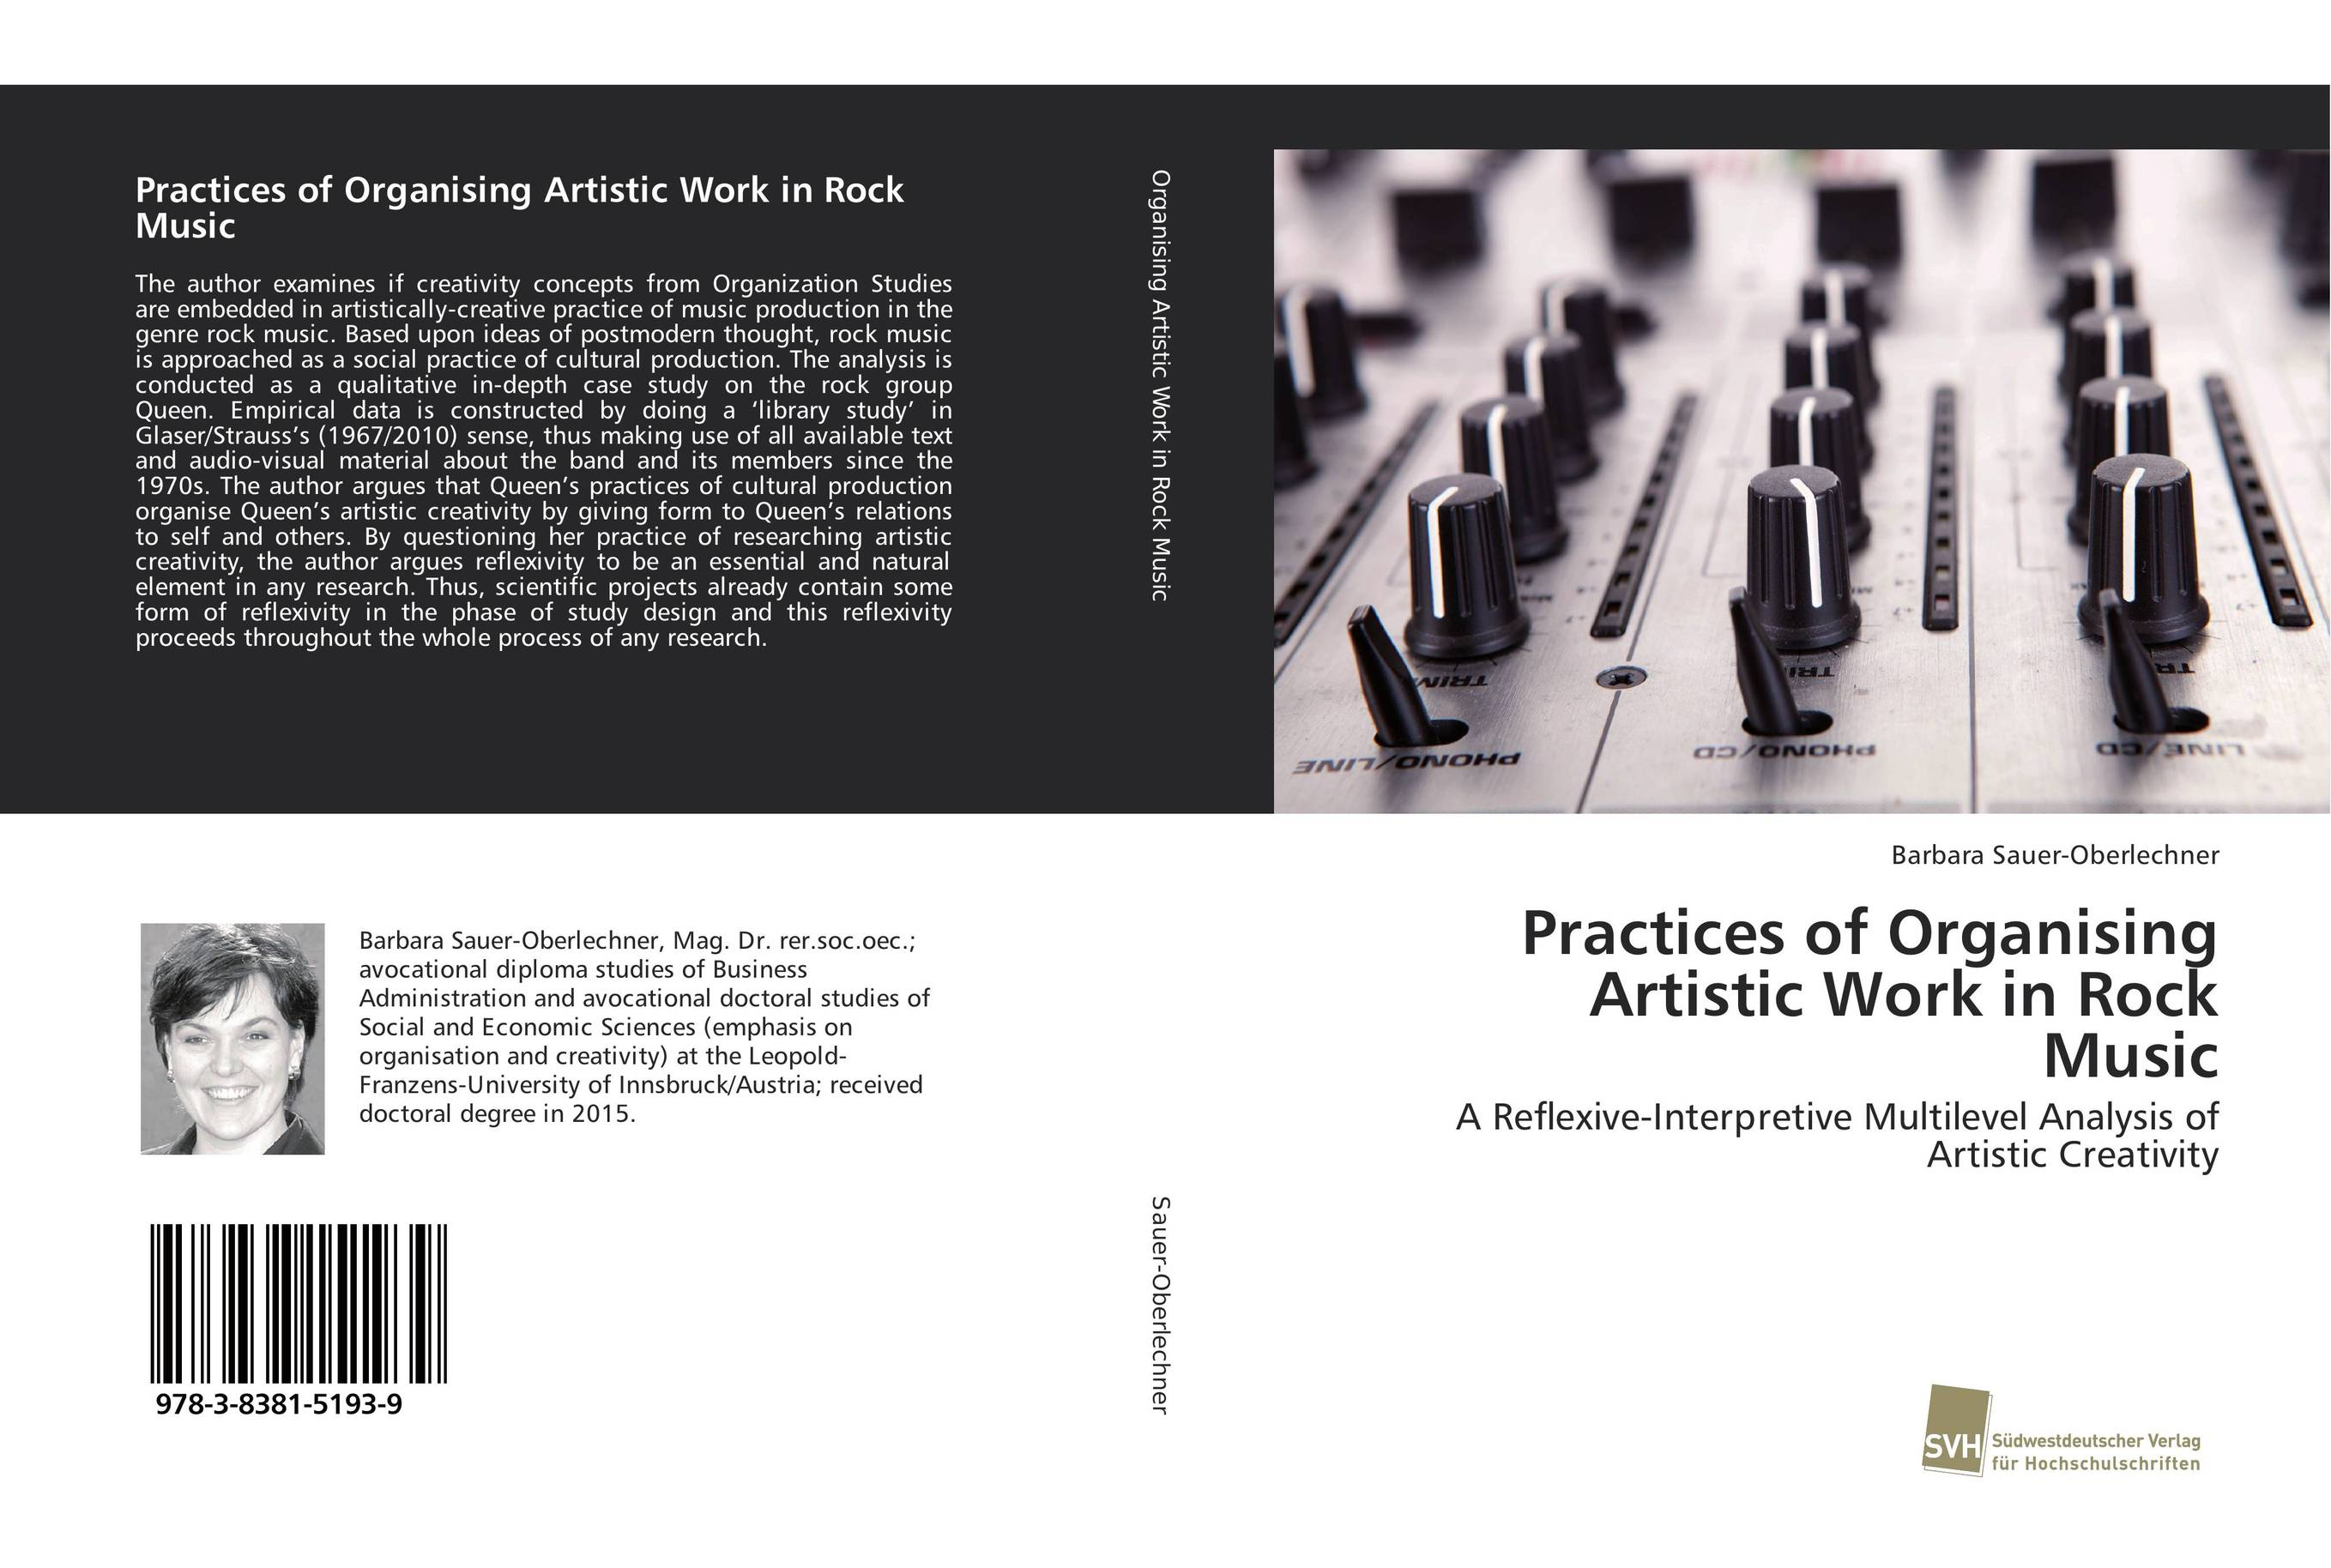 Practices of Organising Artistic Work in Rock Music glaser s31457 00 glaser